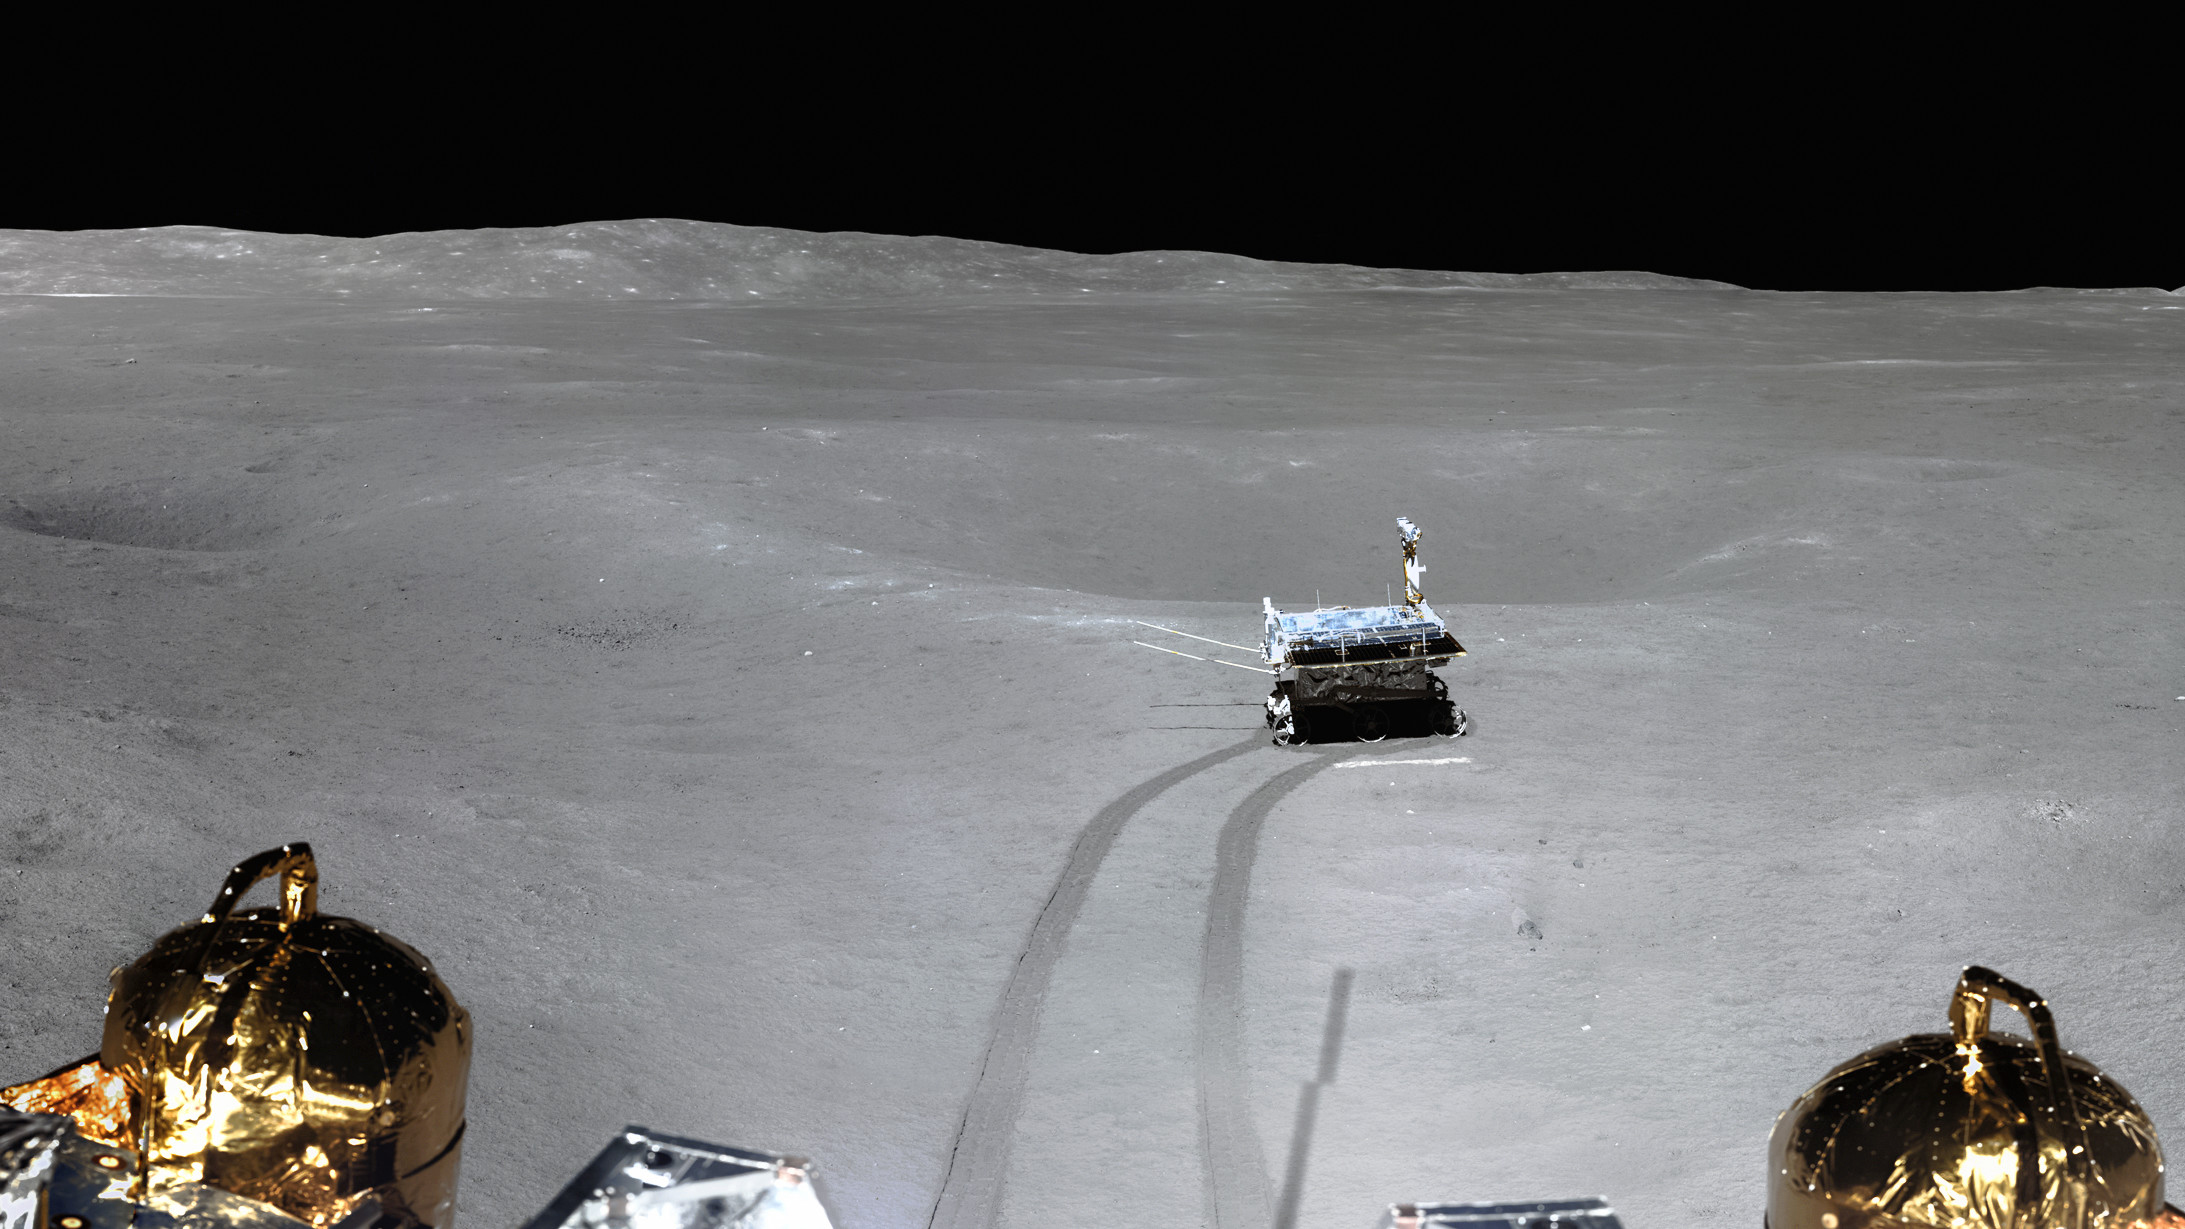 The_first_panorama_from_the_far_side_of_the_moon.jpg